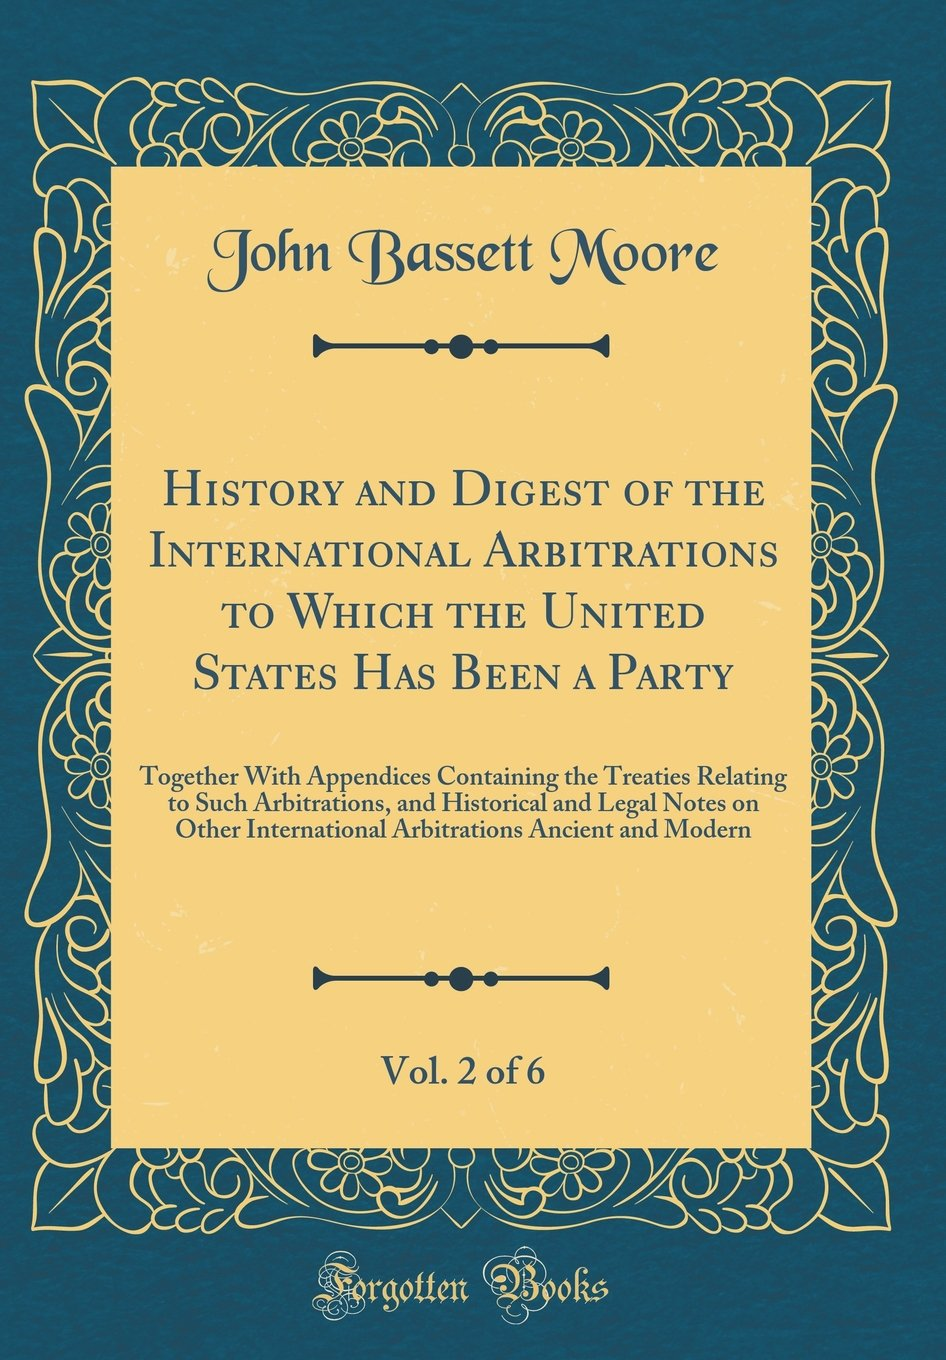 Download History and Digest of the International Arbitrations to Which the United States Has Been a Party, Vol. 2 of 6: Together with Appendices Containing the ... Legal Notes on Other International Arbitratio pdf